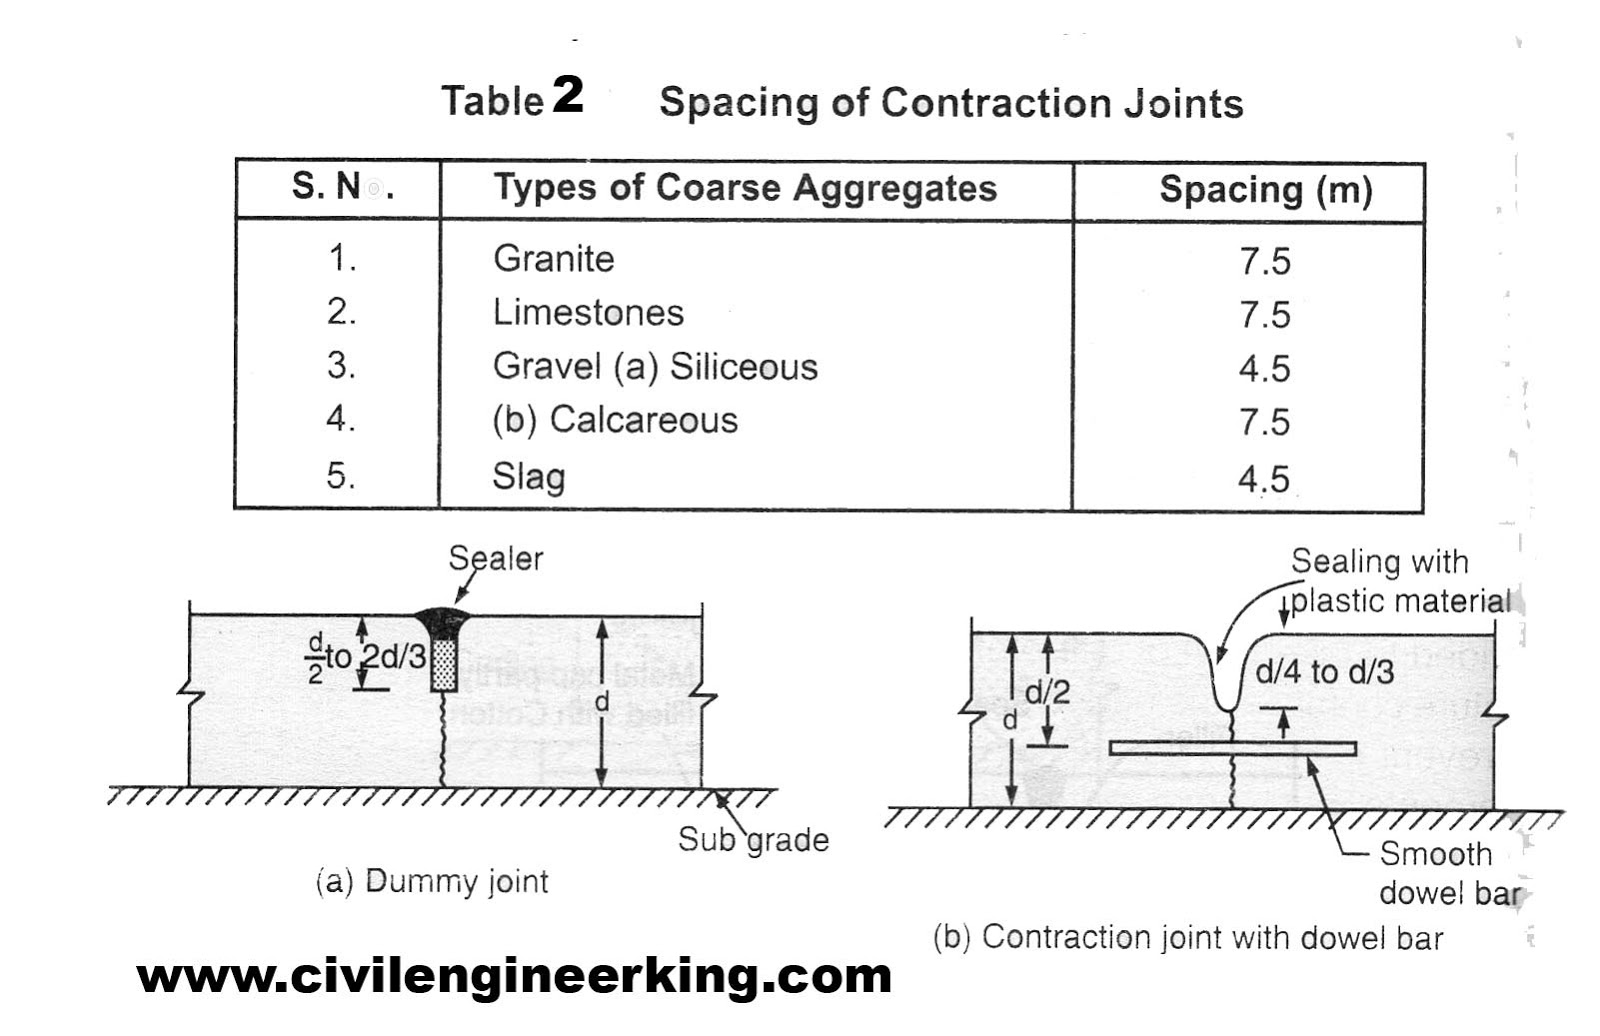 Concrete contraction joint spacing pictures to pin on